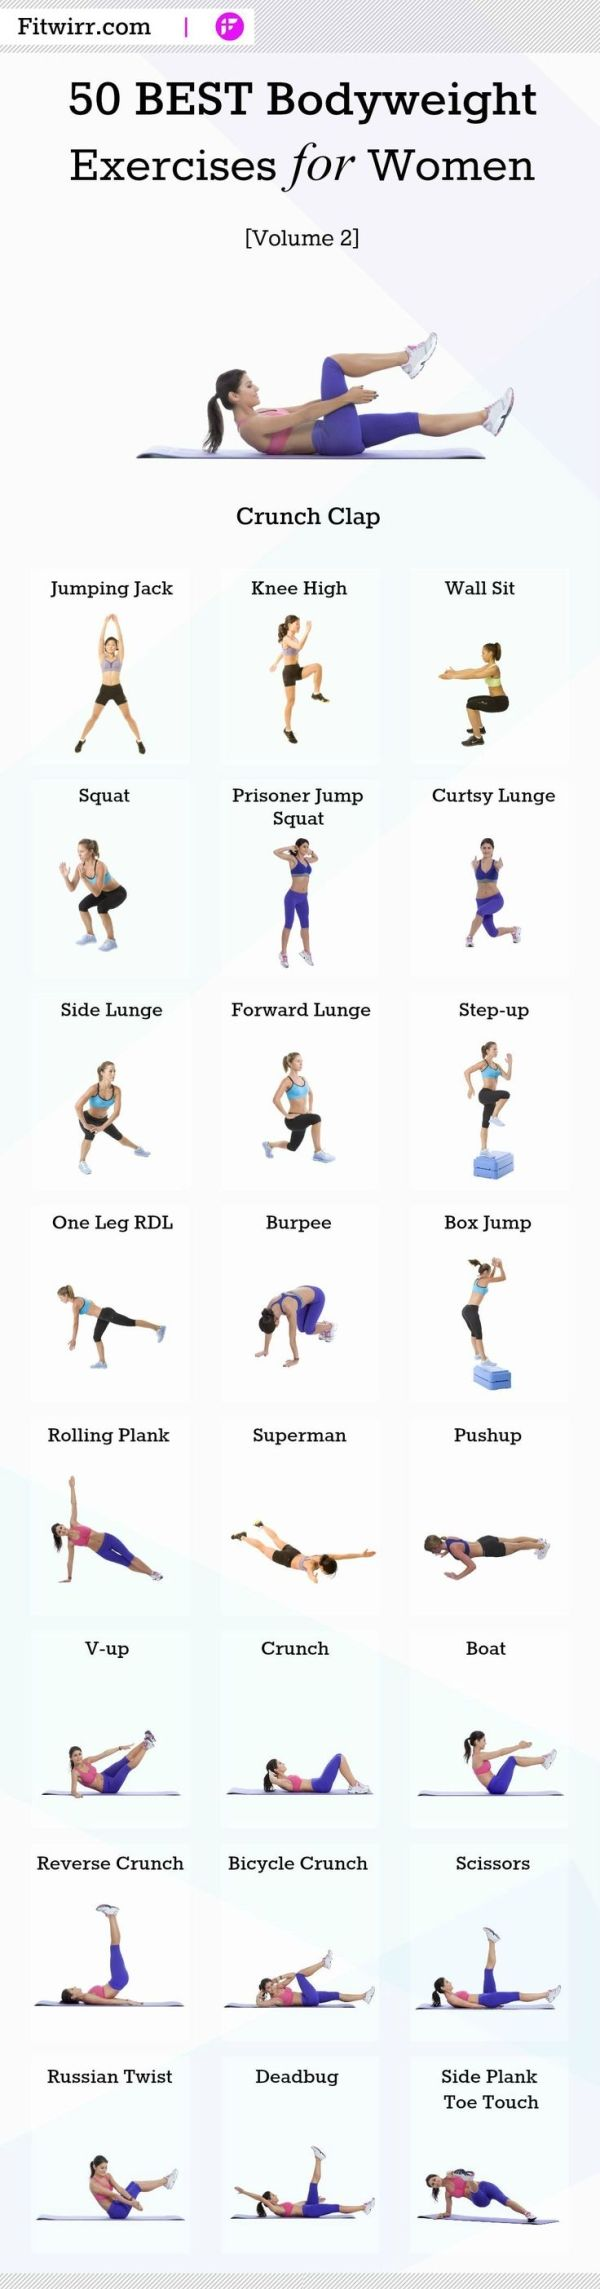 50 best bodyweight exercises for women to get in shape at home. by Amba09